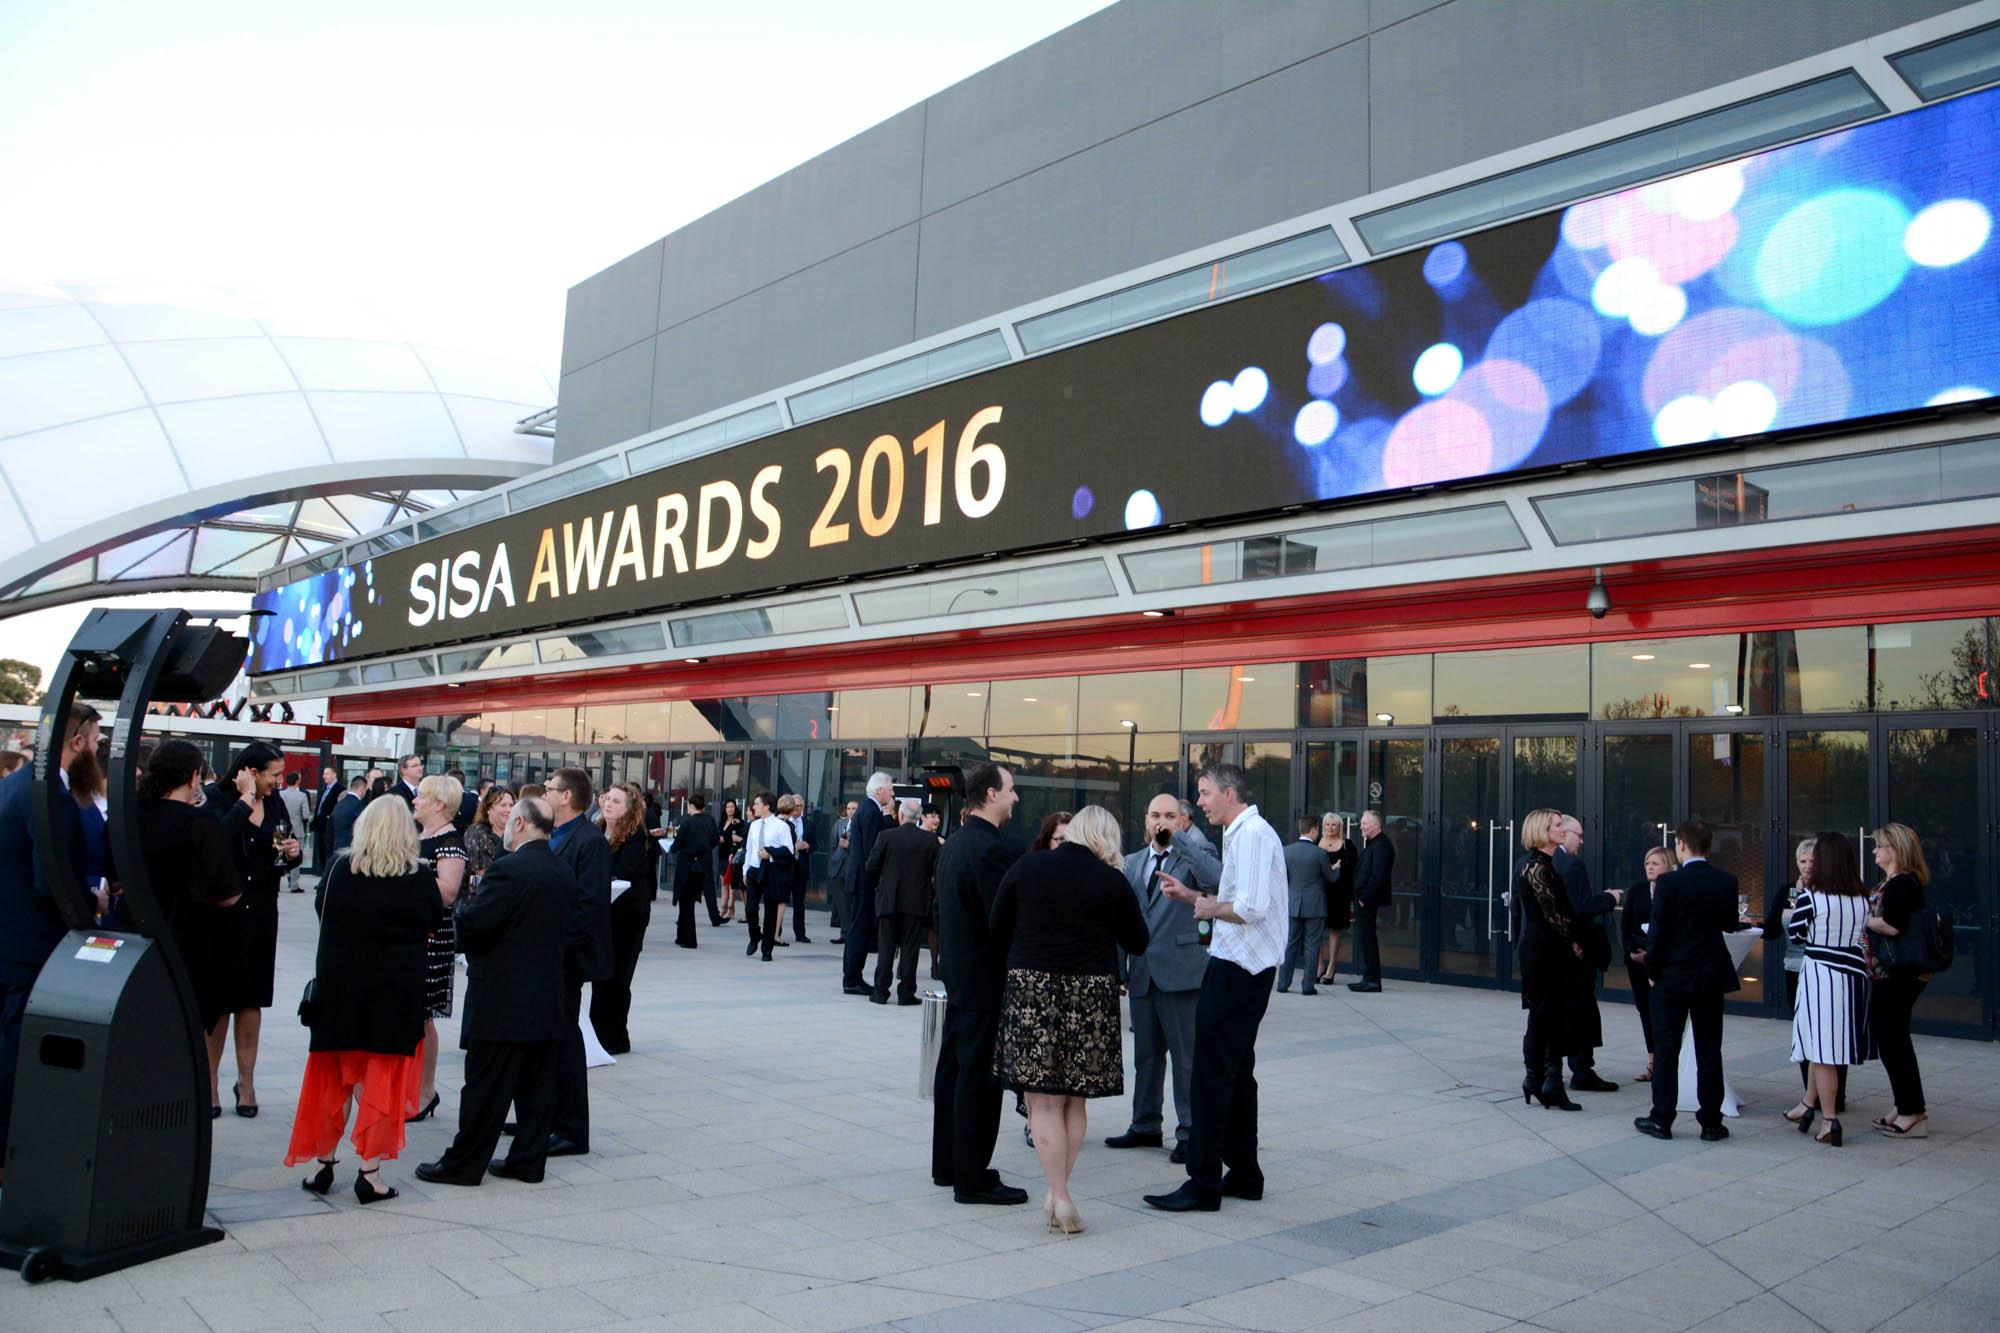 SISA Awards 2016